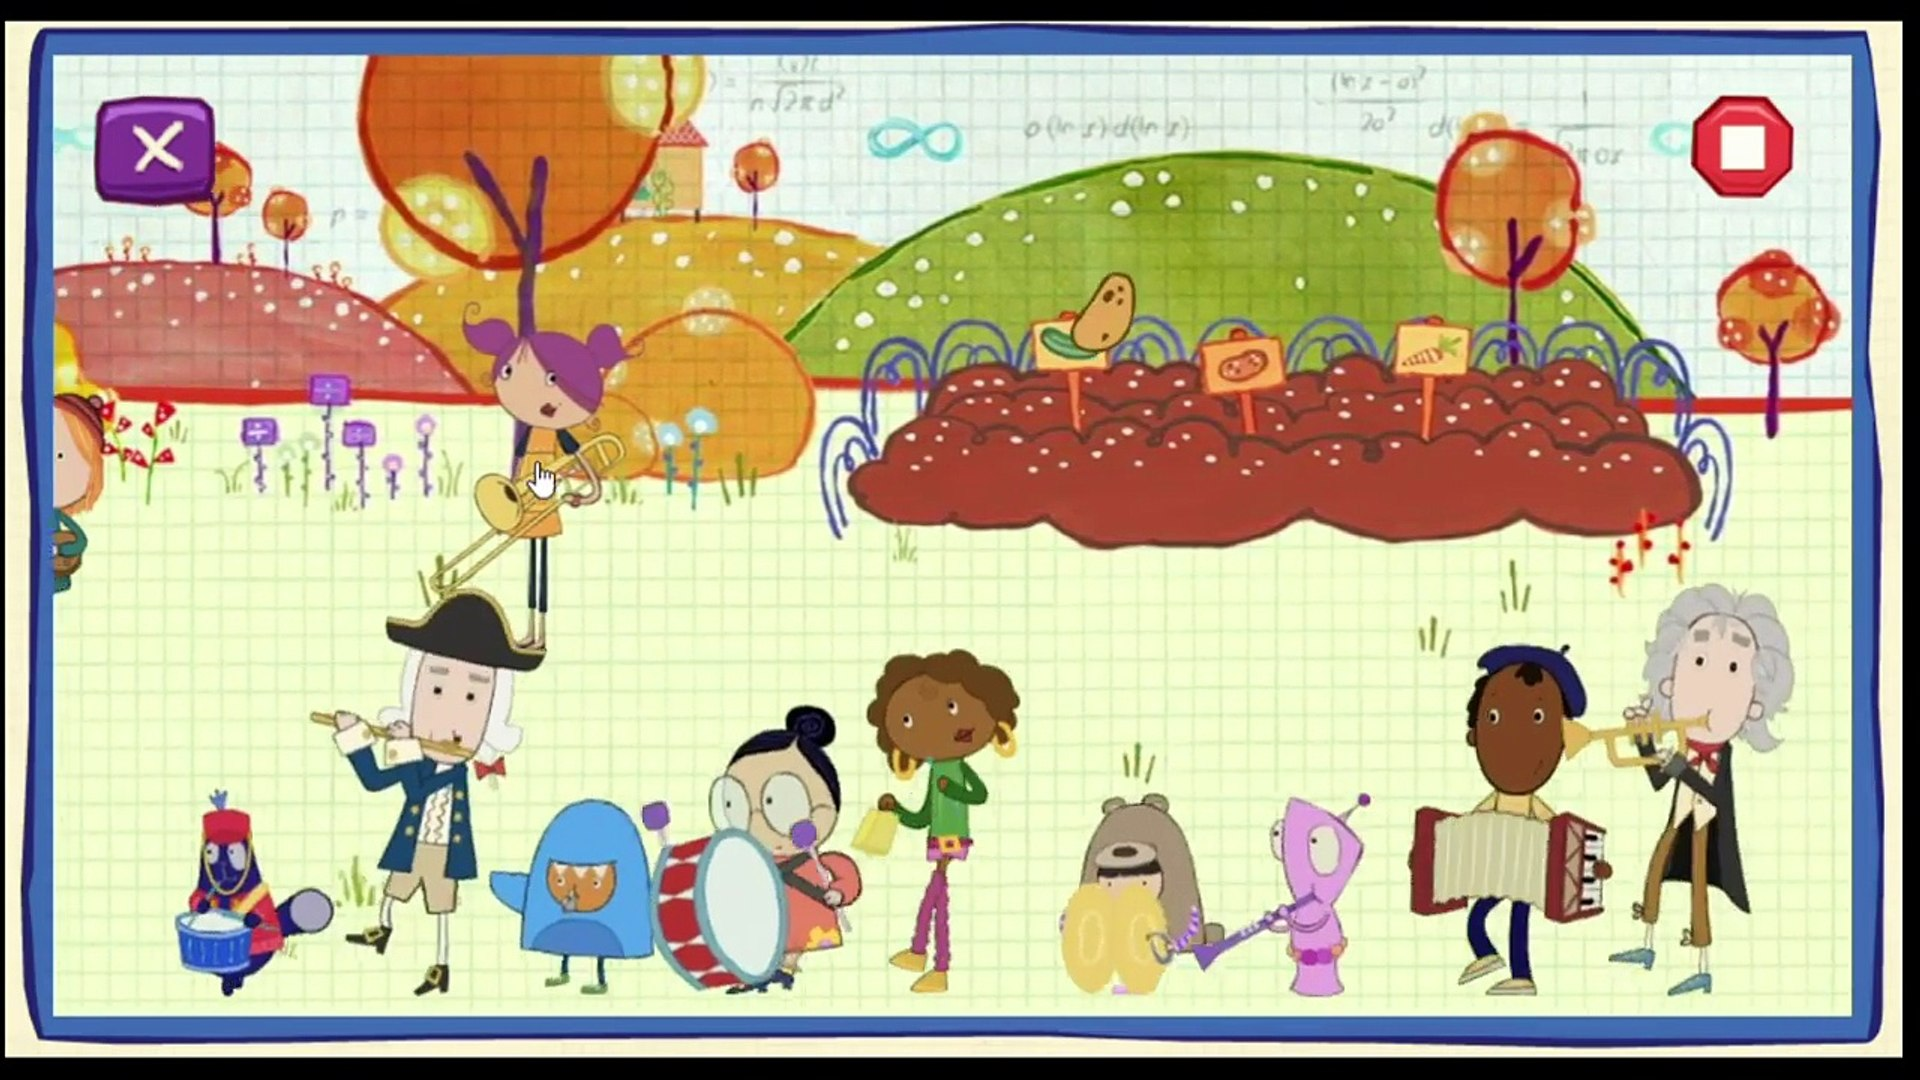 Numbers 1 to 10 Kids Games - 123 Learning for kids. Peg + Cat Parade. Education for babies